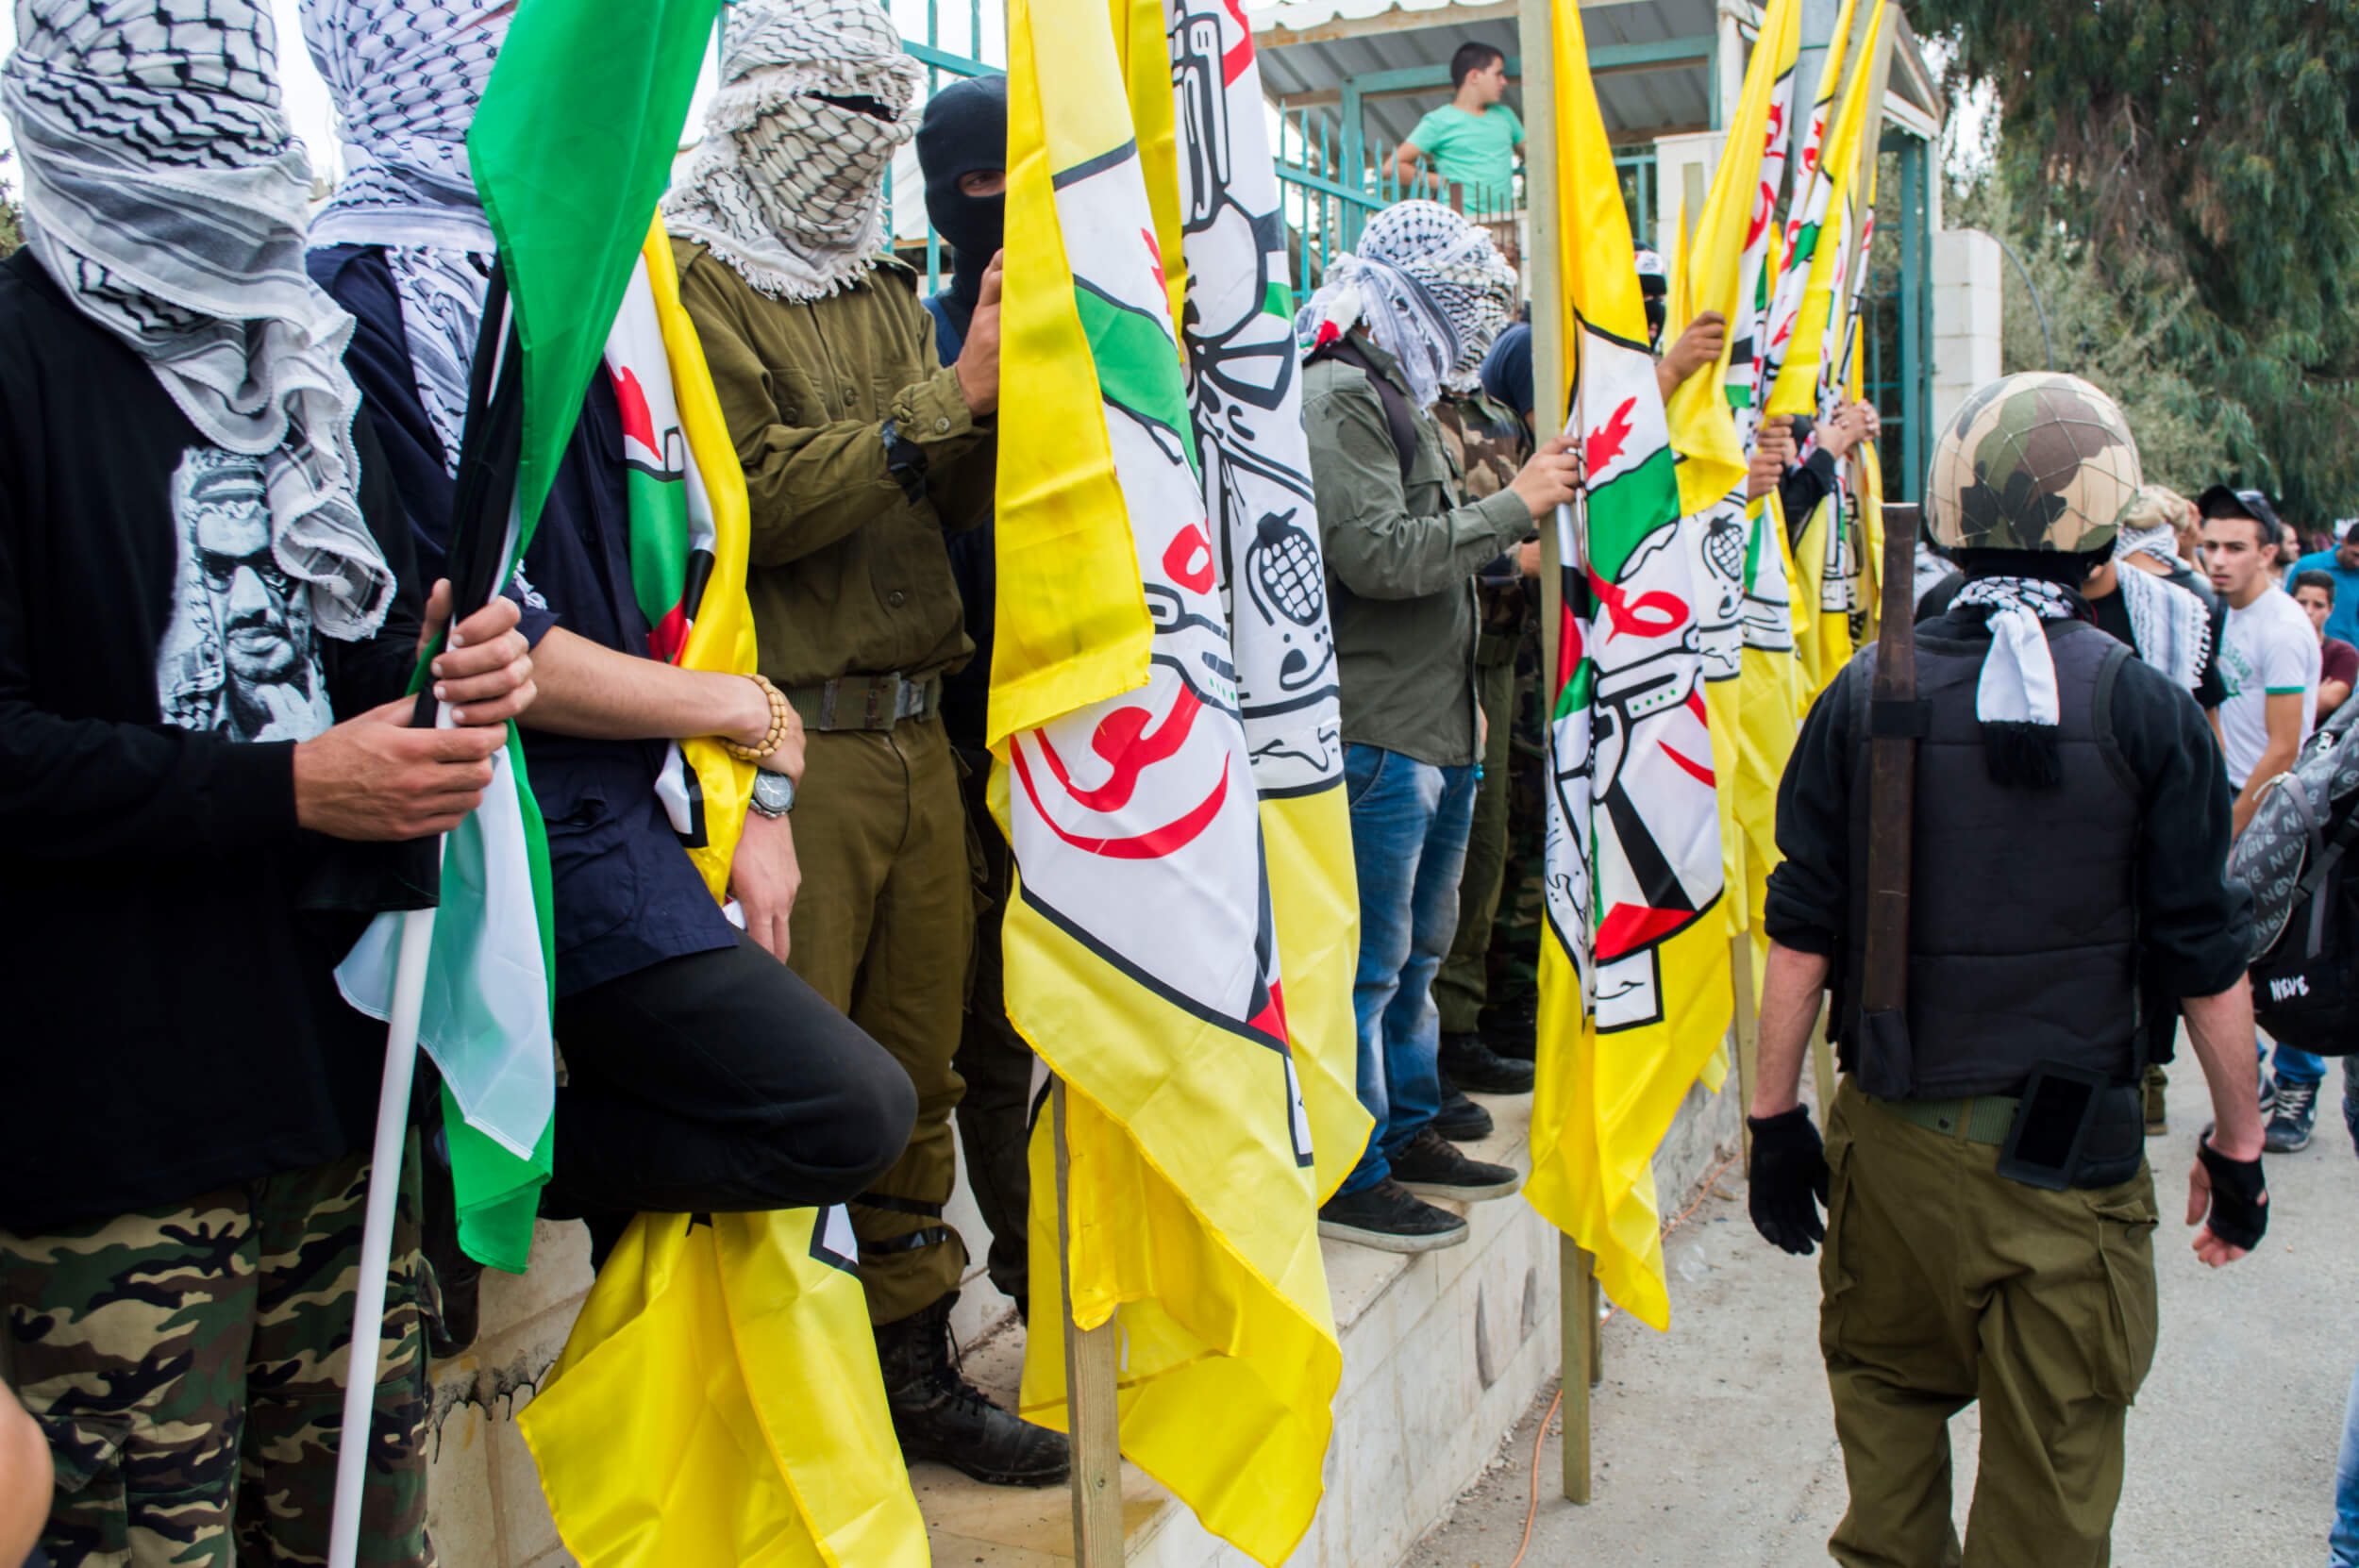 The Fatah movement's armed wing attended the funeral. (Photo by Abed al Qaisi)